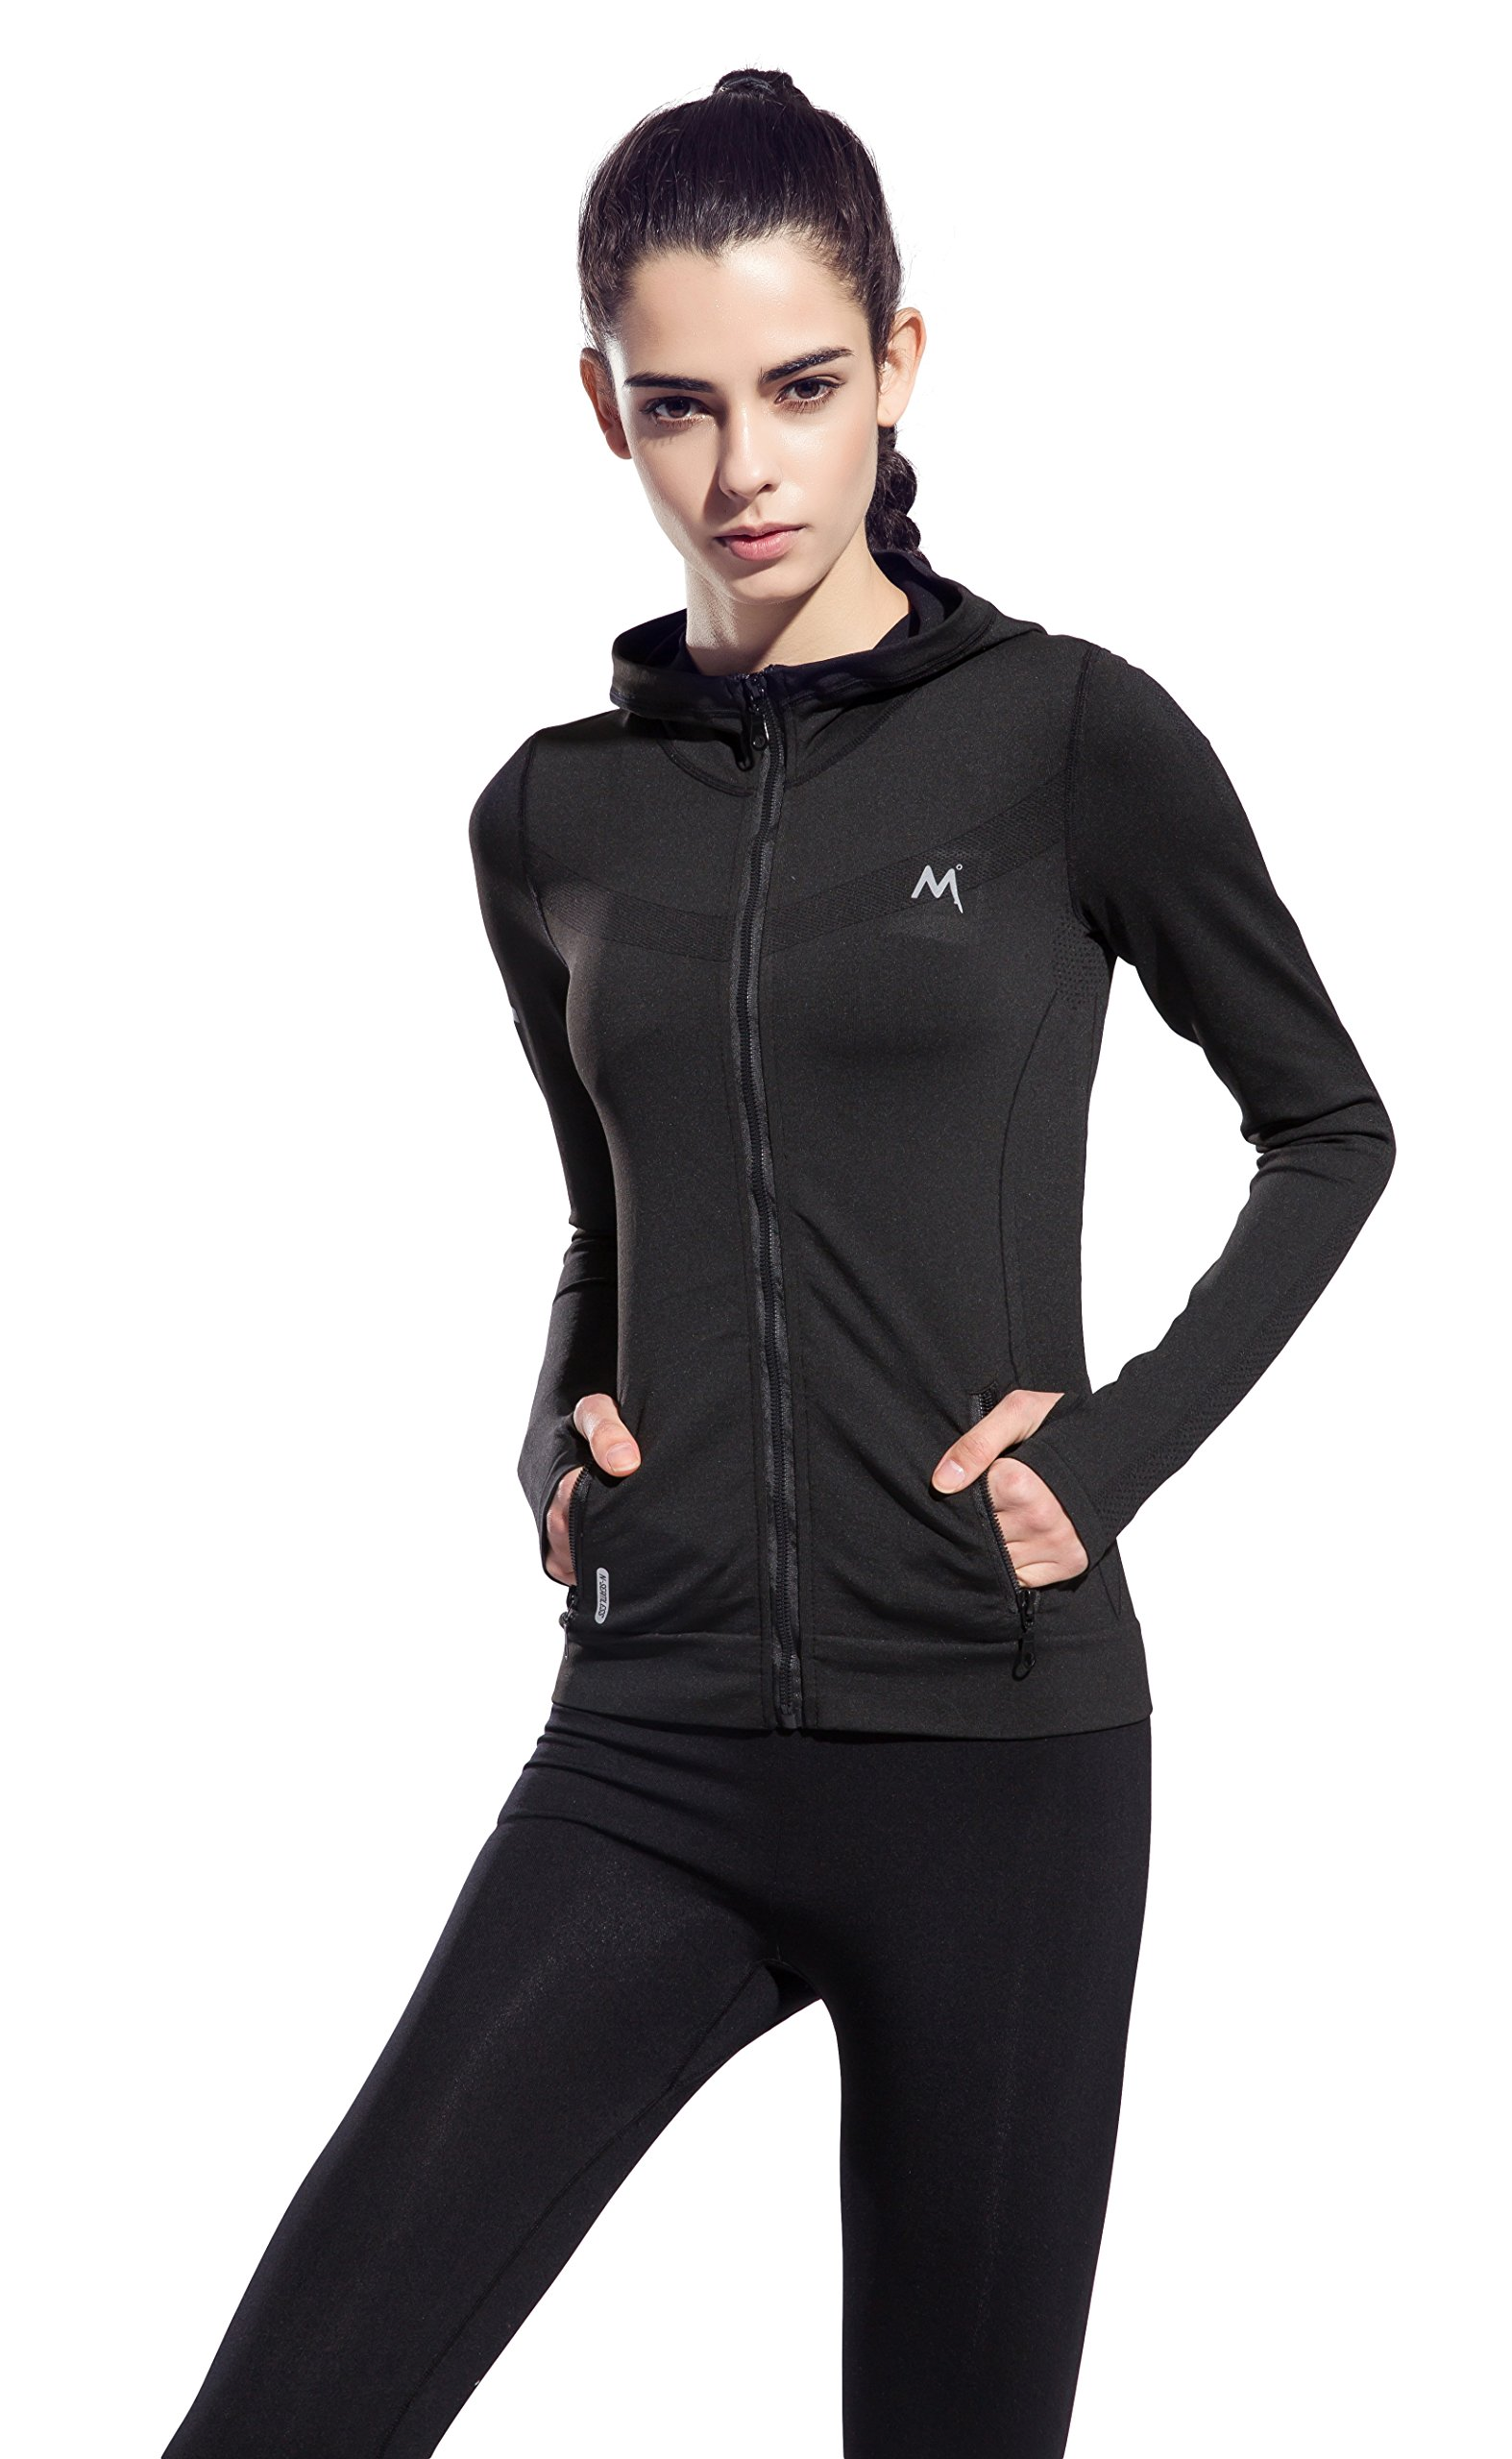 Women's Stretchy Workout Dri-Fit Hooded Jacket ( black, s)